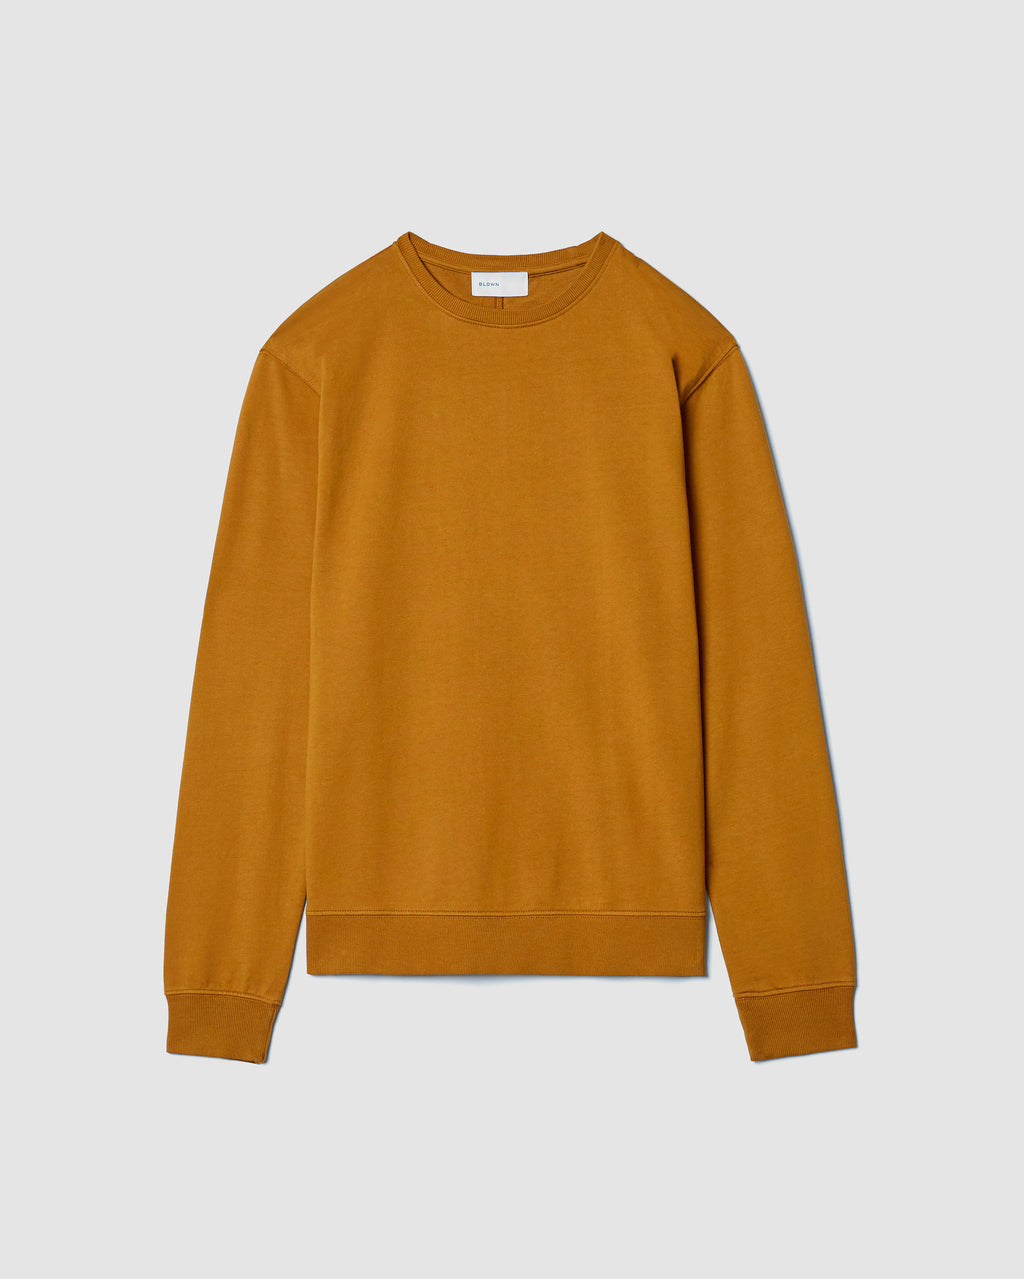 The Haring Sweatshirt in Antique Gold